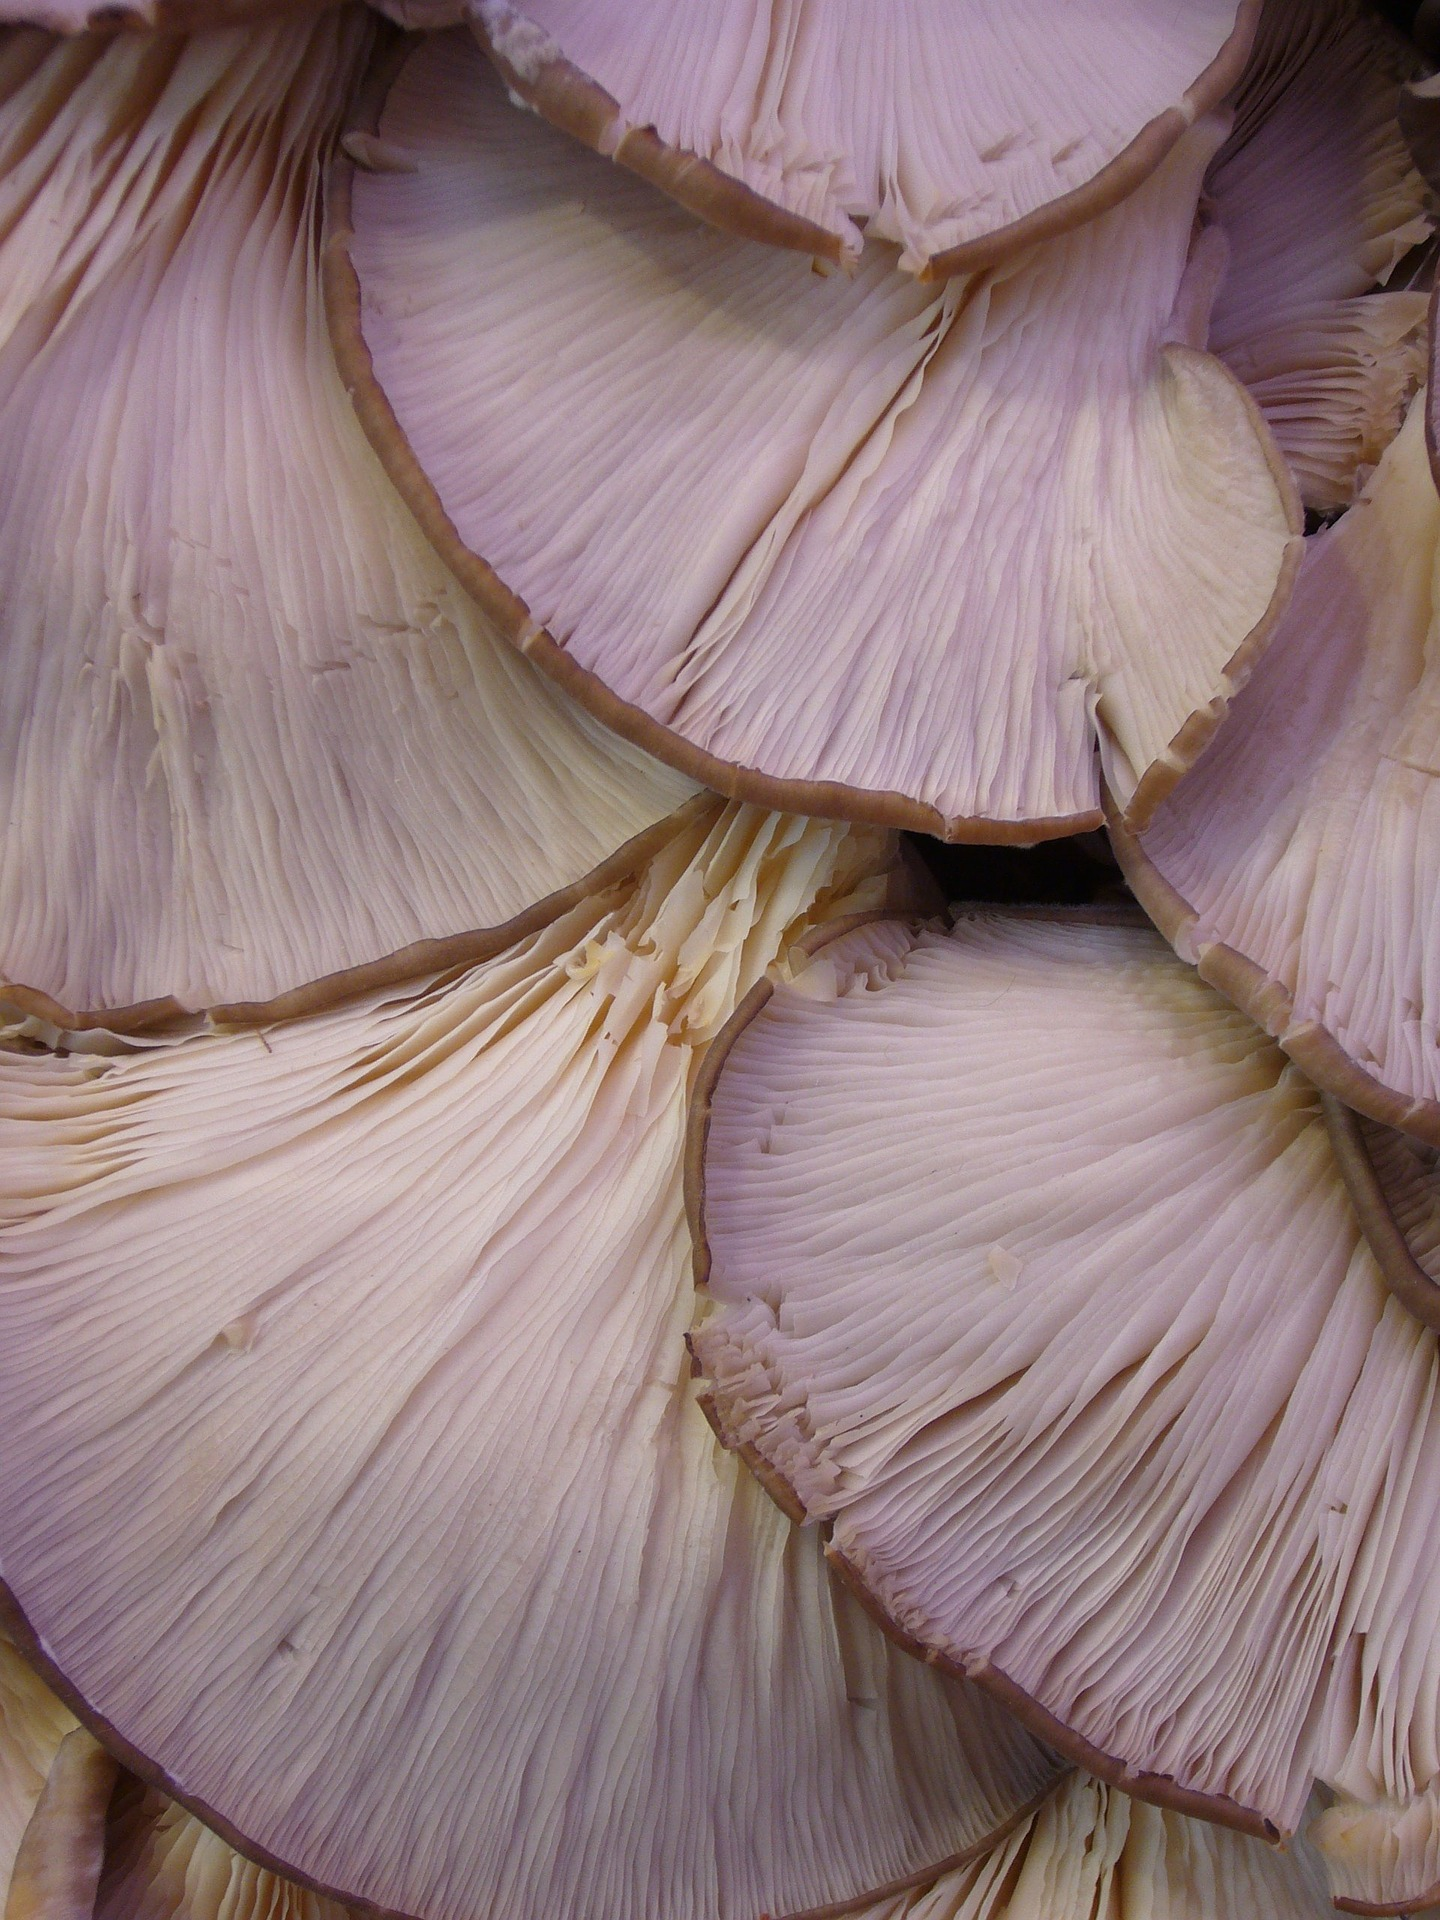 mushrooms-4791_1920